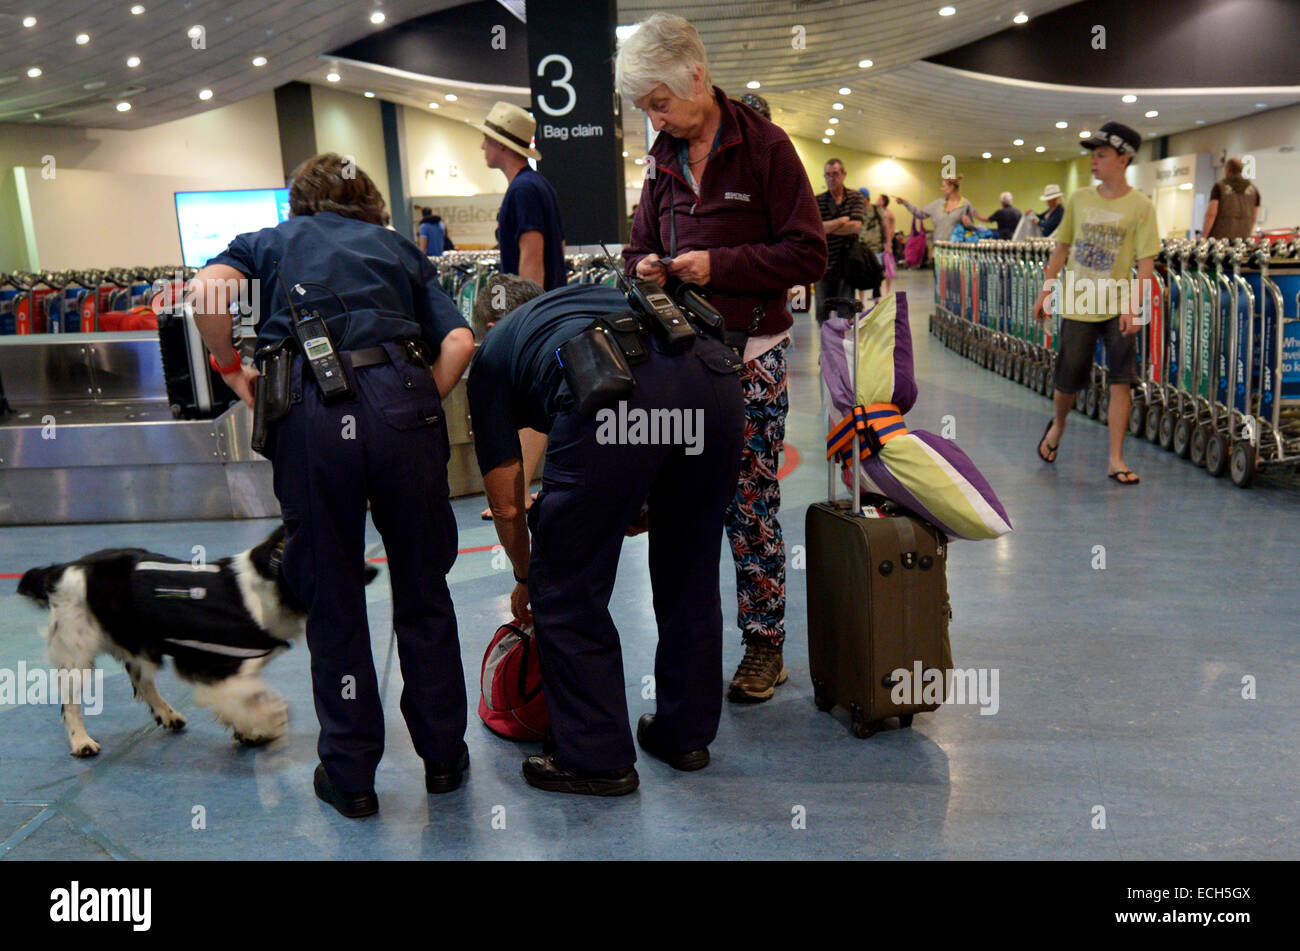 Biosecurity officers with sniffer dog on duty.New Zealand has very strict biosecurity procedures at airports and - Stock Image